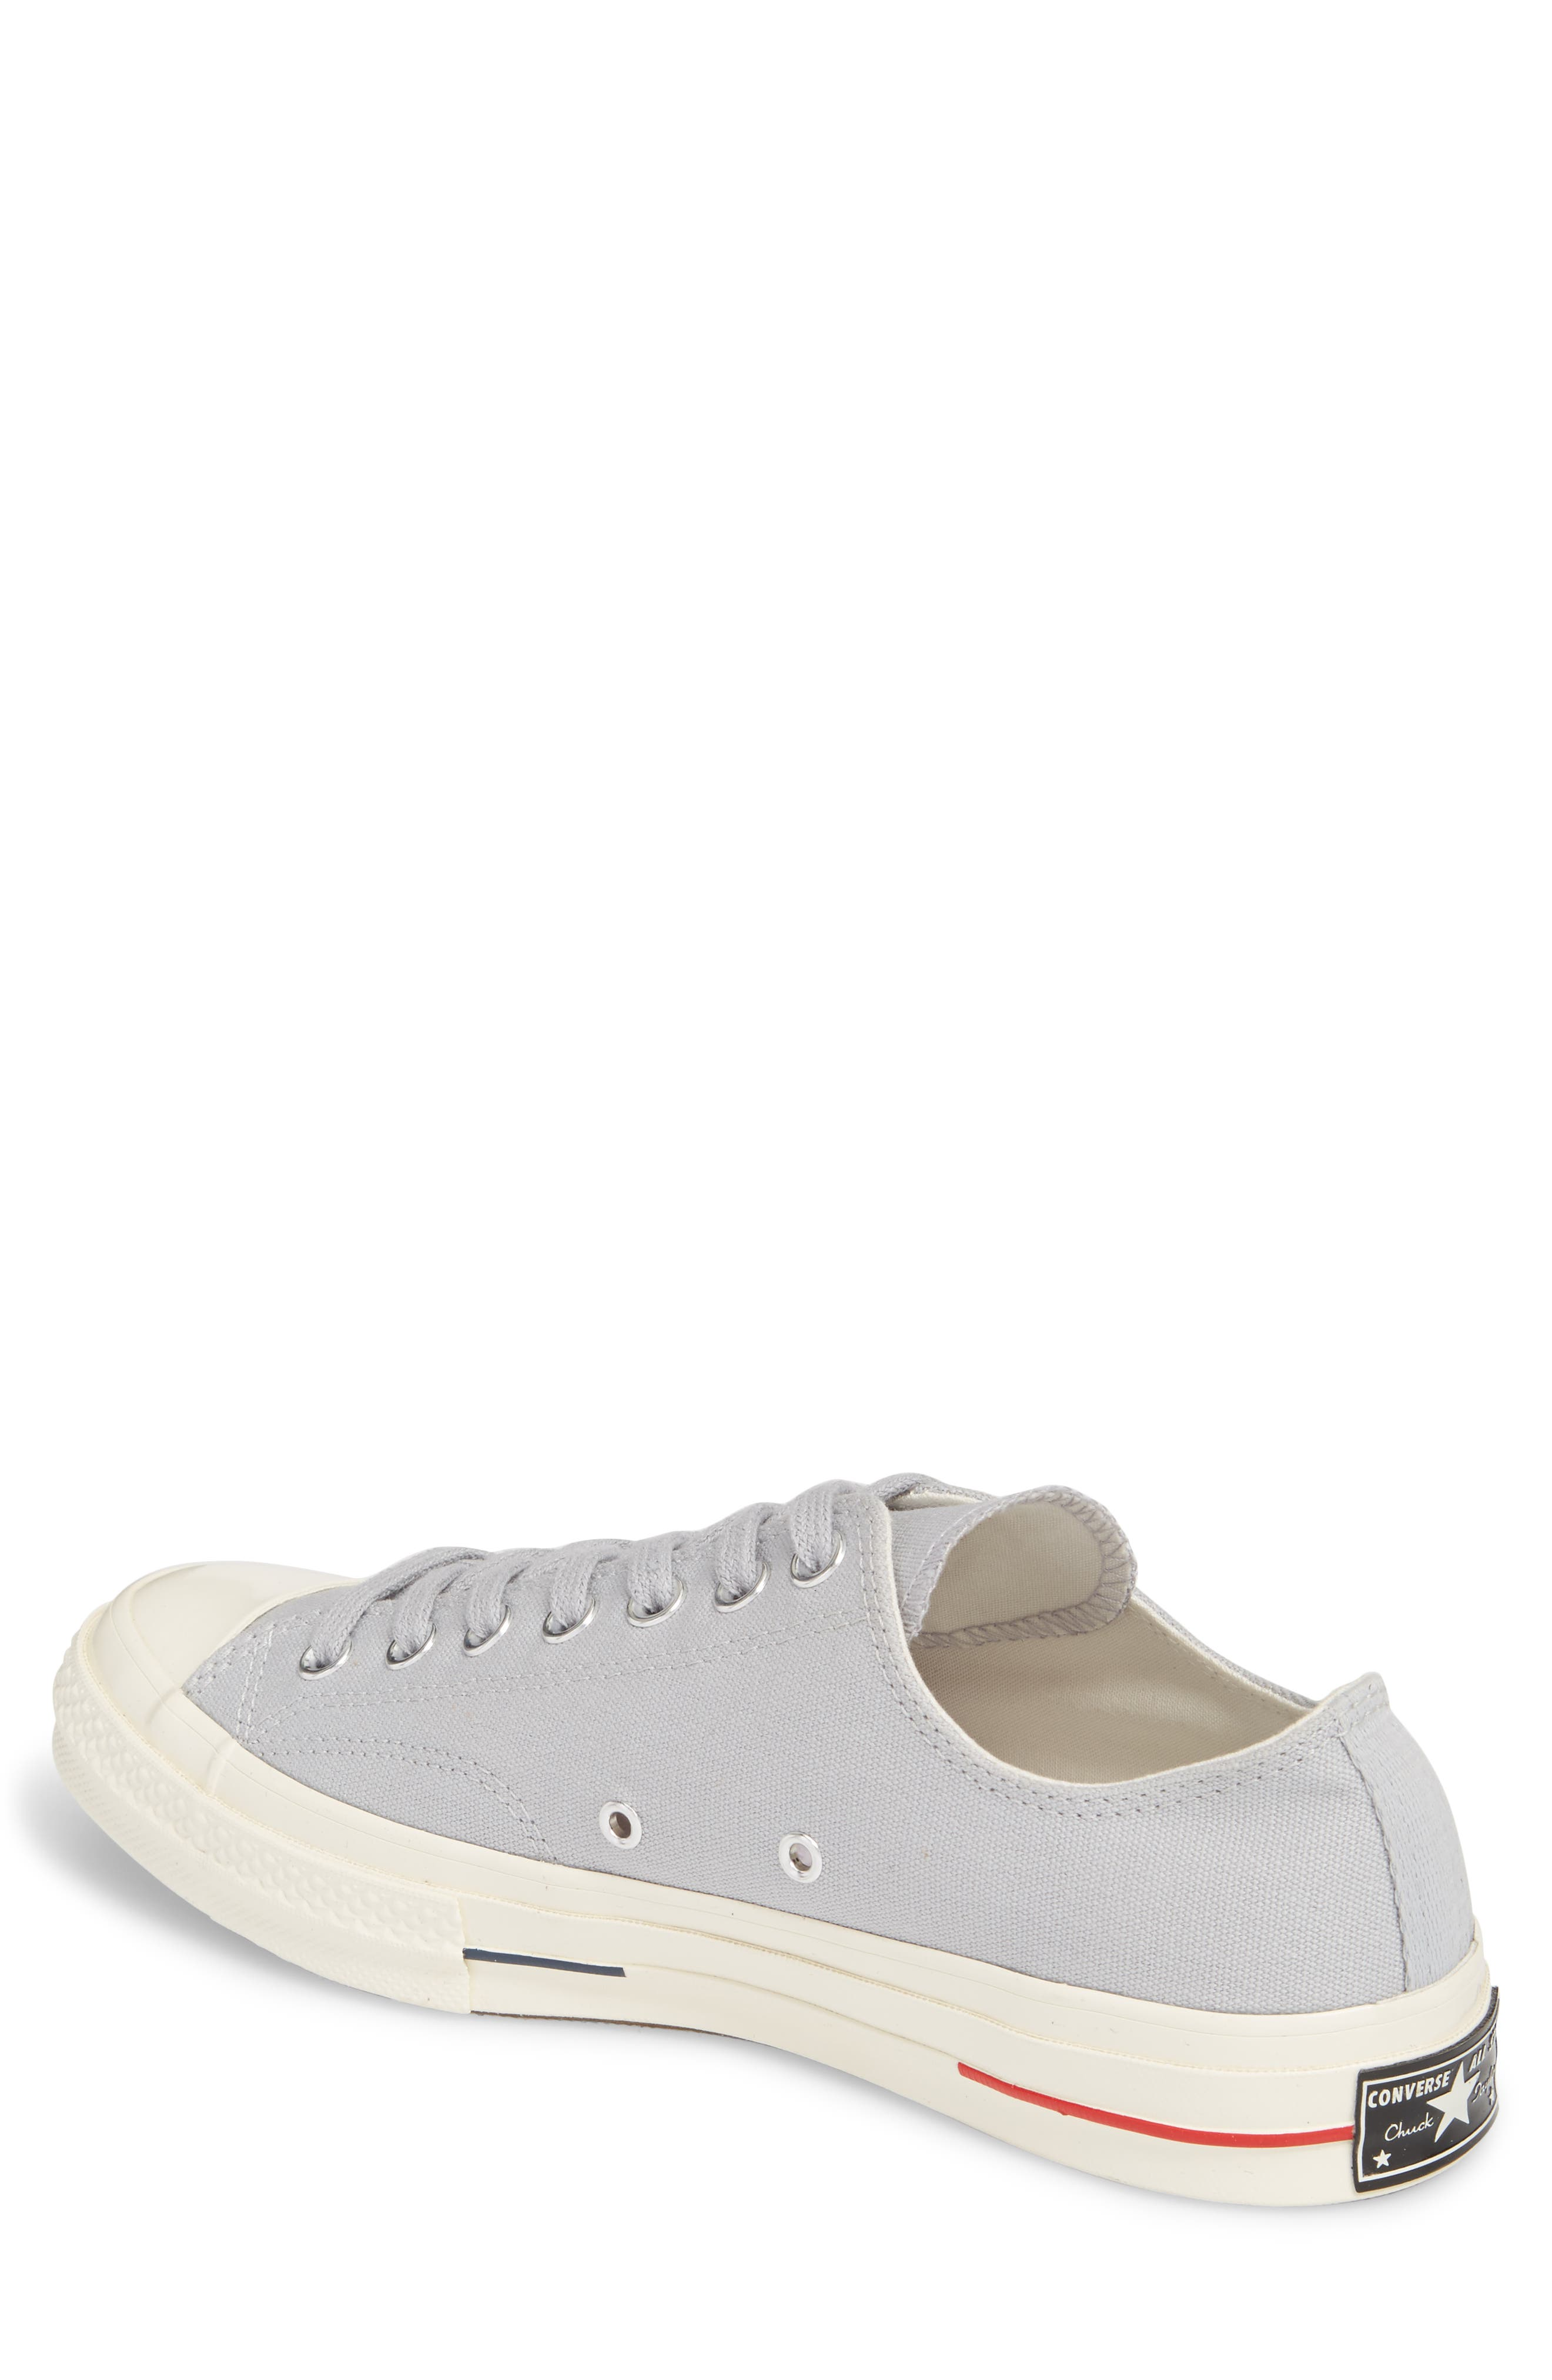 Chuck Taylor<sup>®</sup> All Star<sup>®</sup> 70 Heritage Low Top Sneaker,                             Alternate thumbnail 2, color,                             Wolf Grey